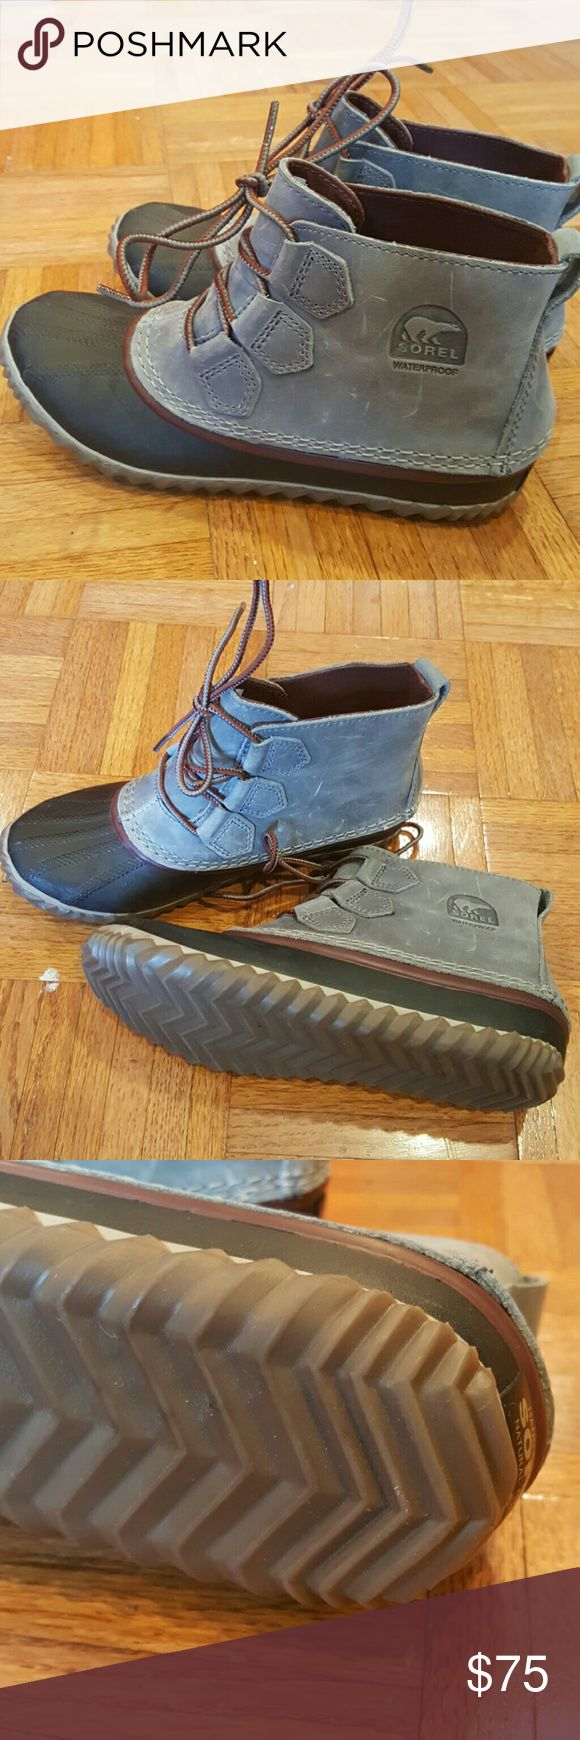 Sorel 'Out n About' grey duck boots New without box Sorel Shoes Ankle Boots & Booties